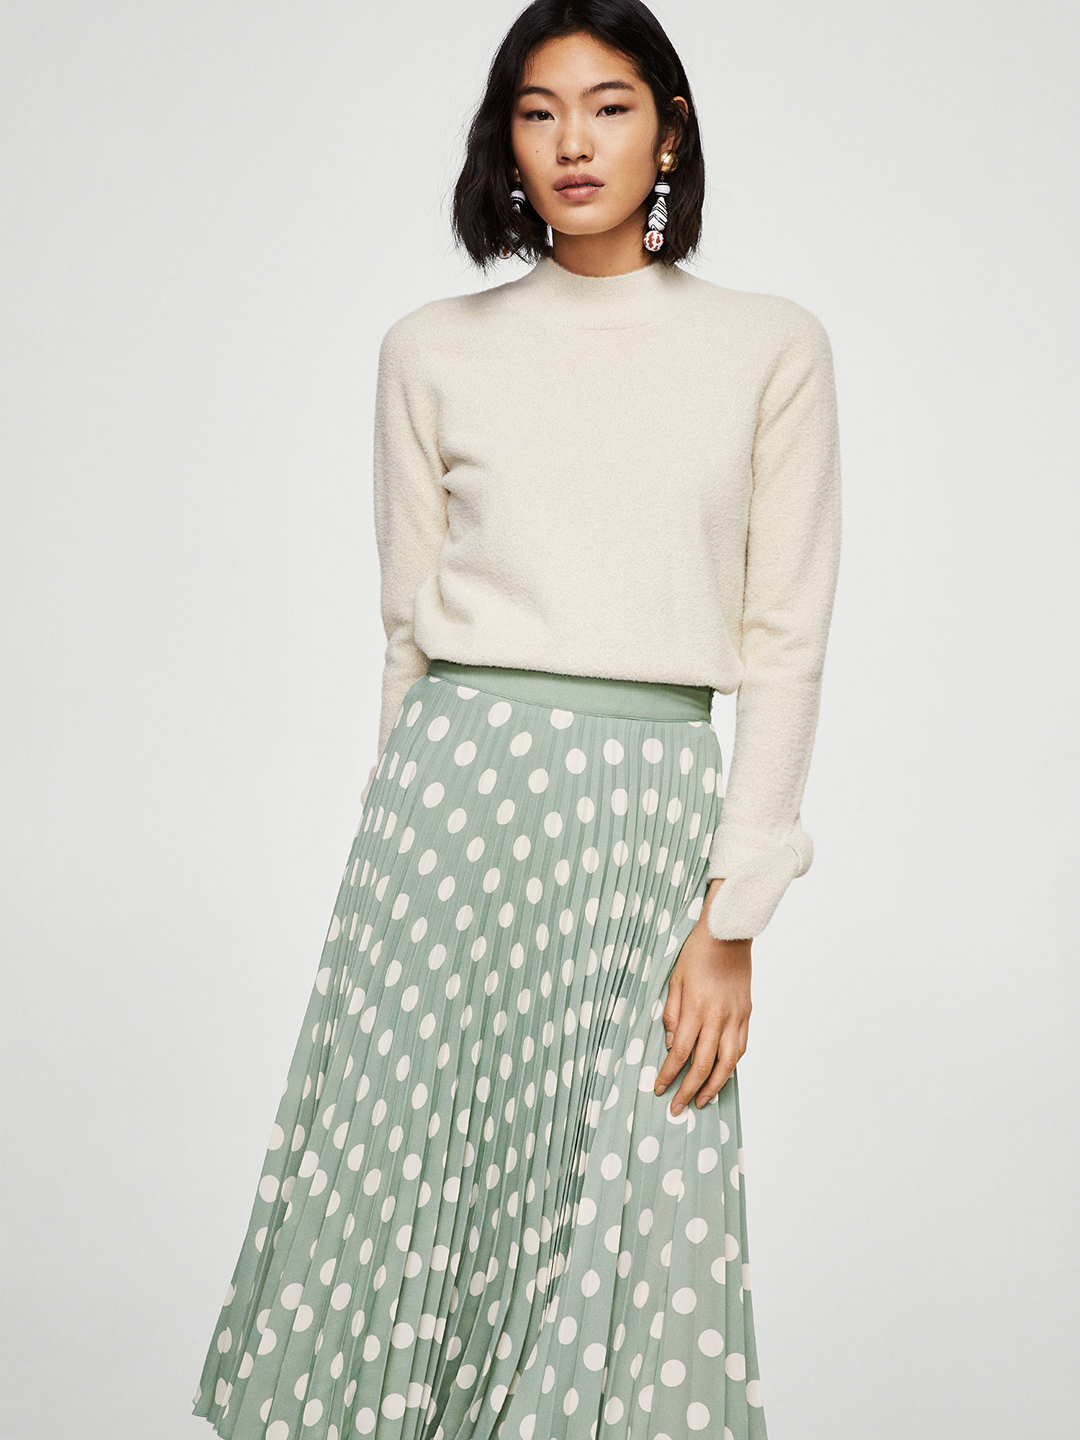 6-mango-skirt-valentines-day-ideas-not-red-pink